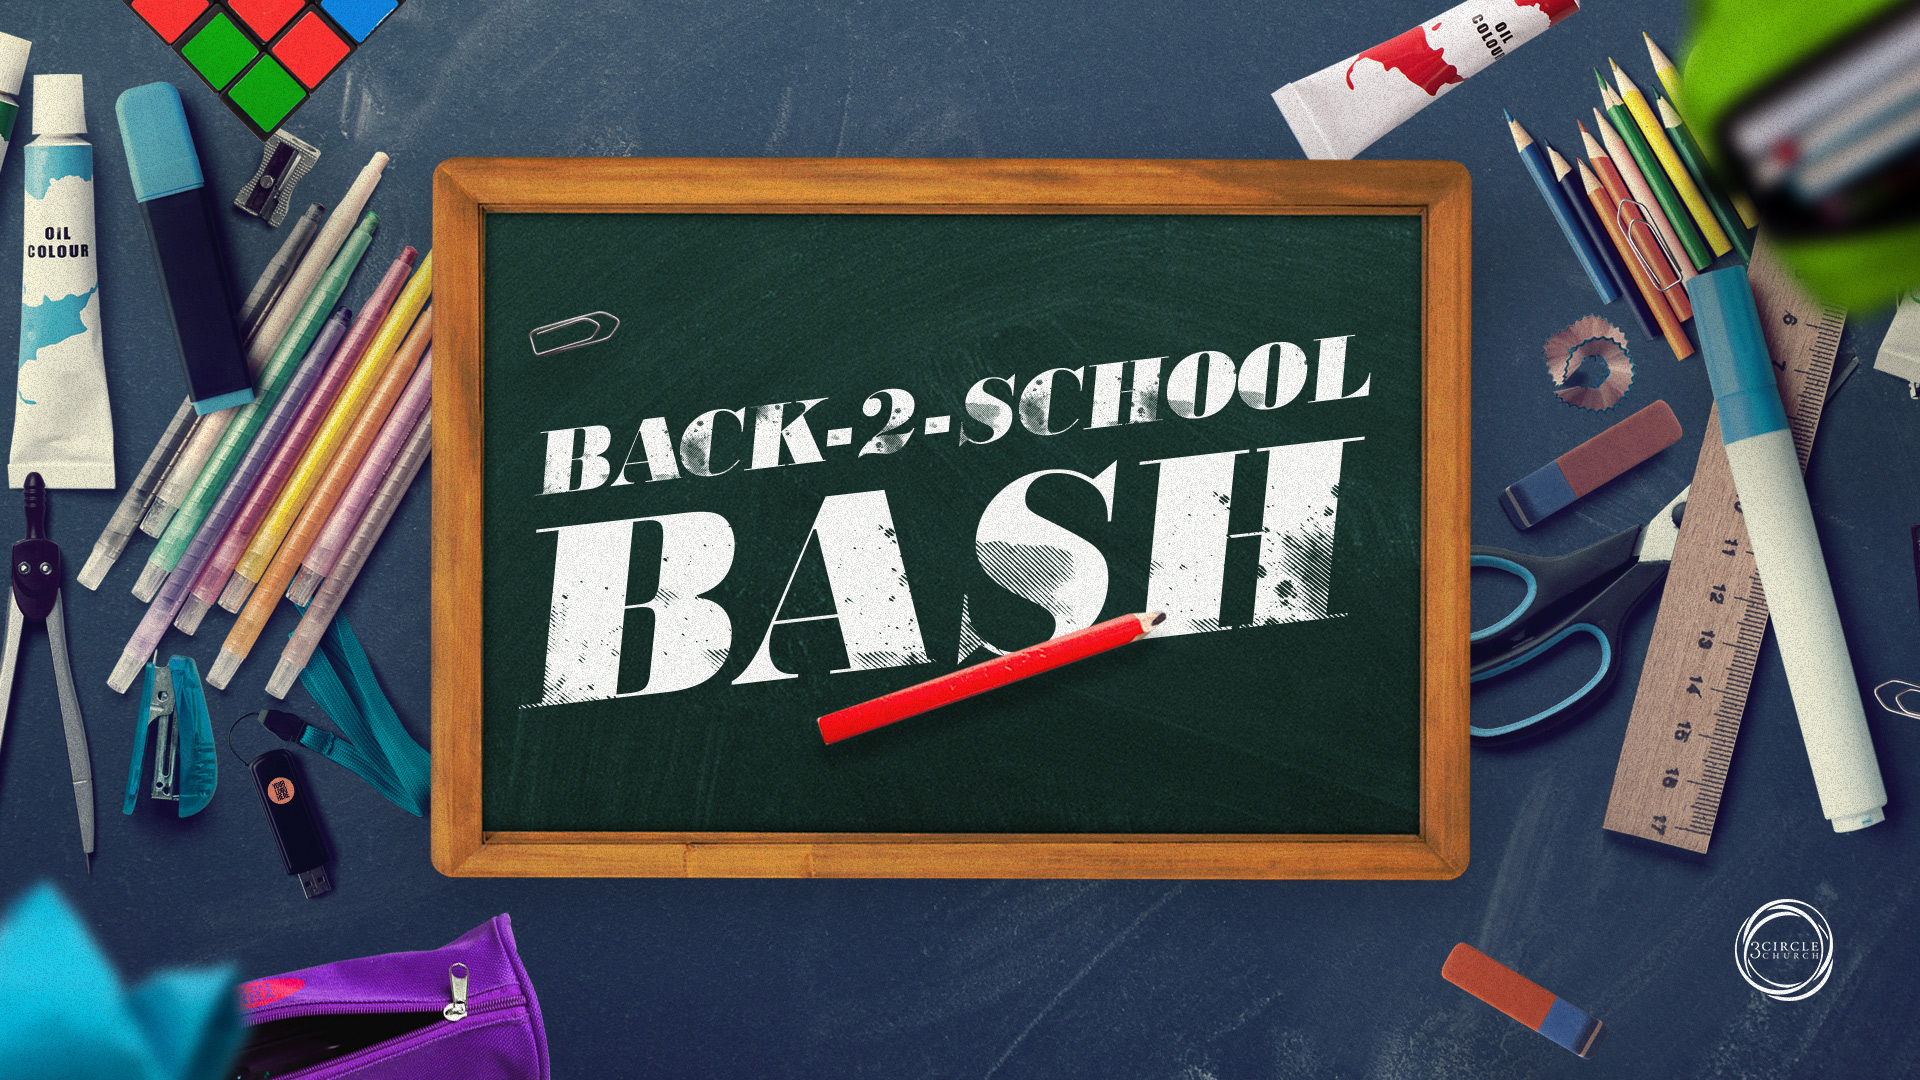 Back - 2 - School Bash